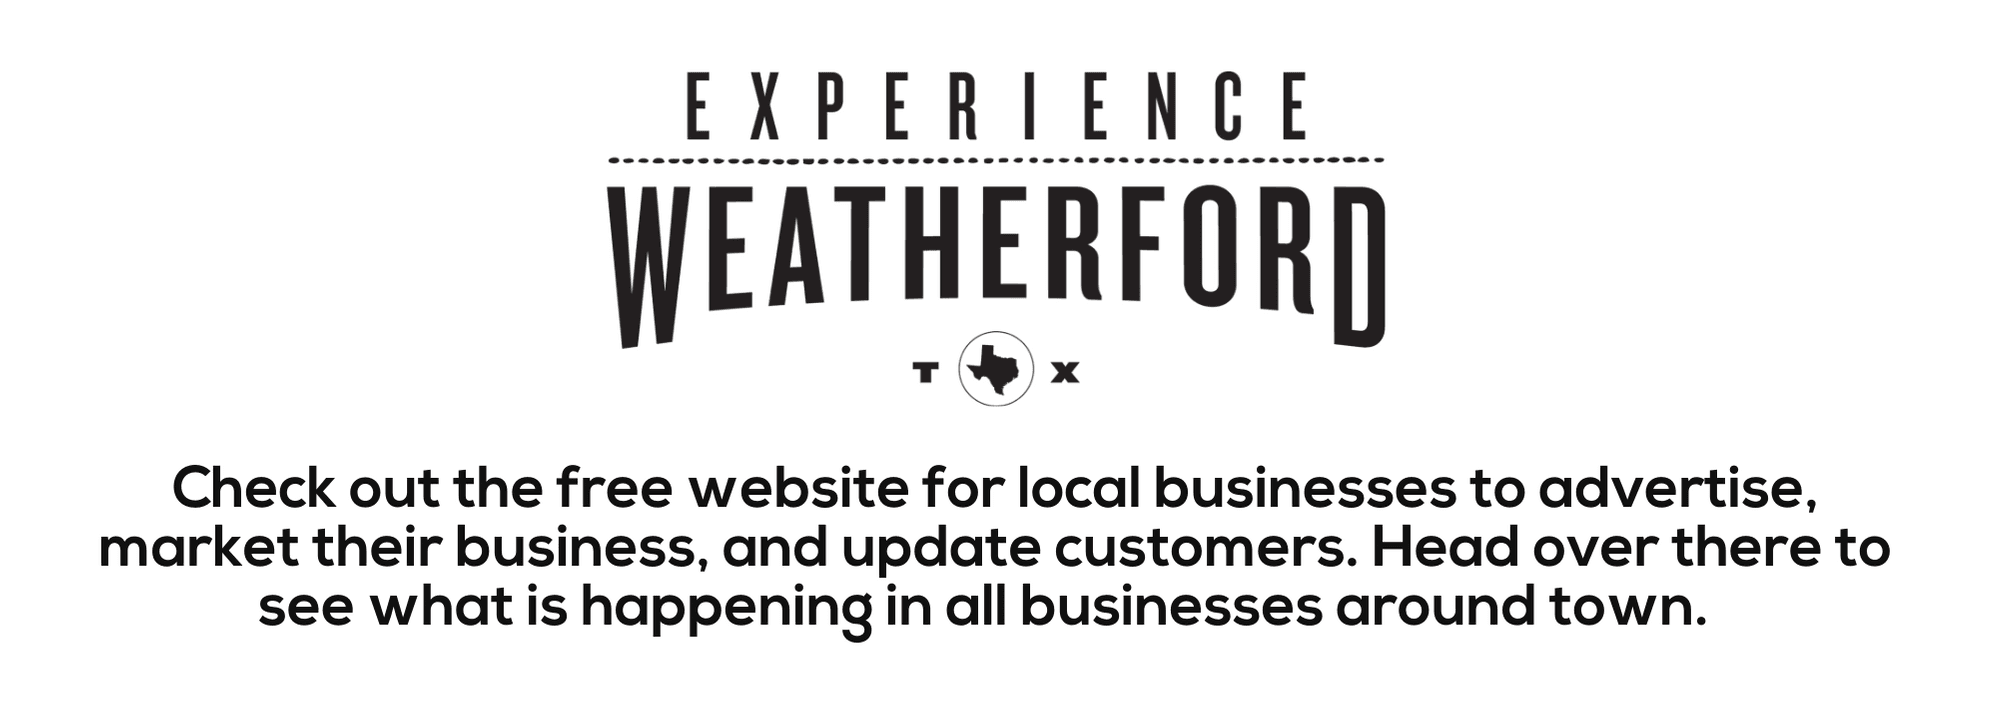 Experience Weatherford Banner - black and white  Opens in new window